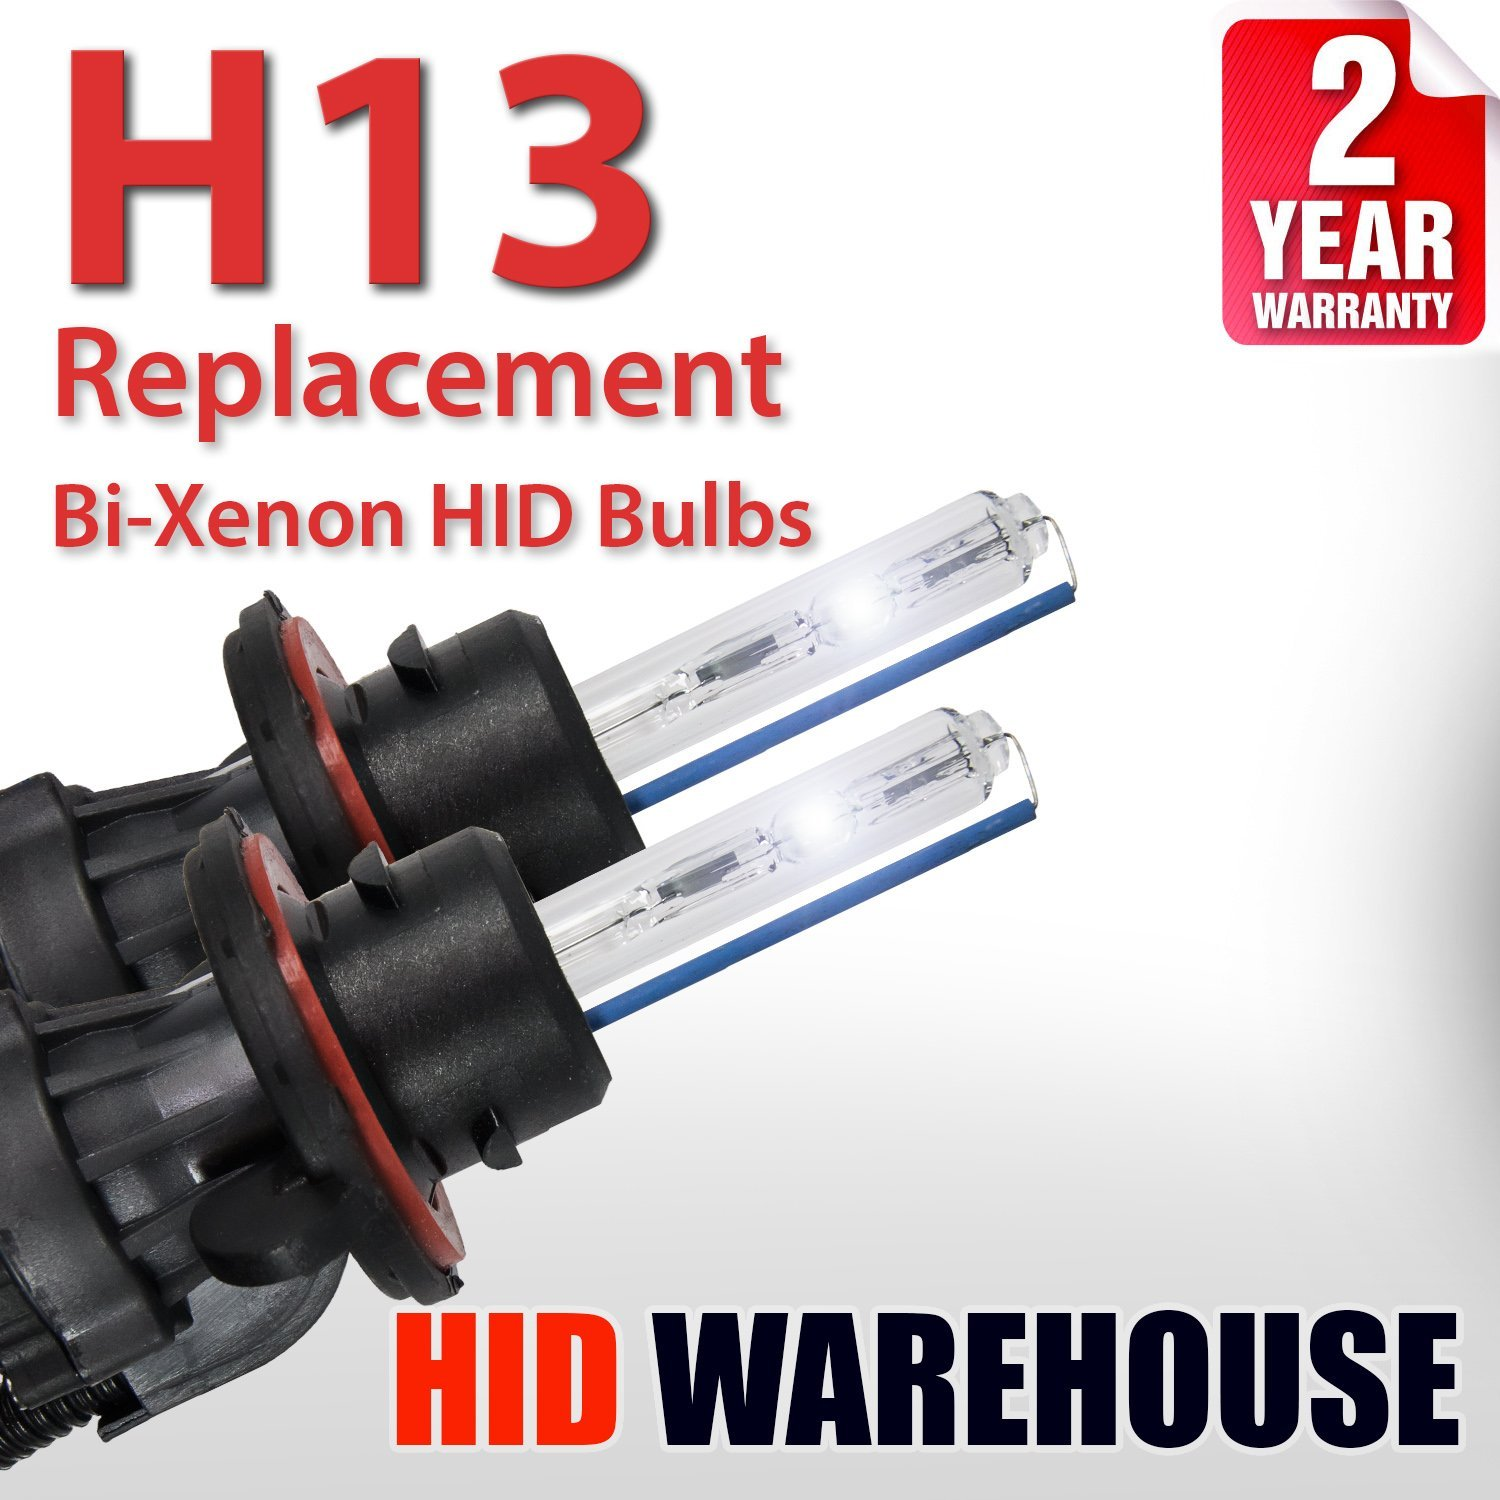 D2S // D2R // D2C - 2 Year Warranty 4300K Daylight HID-Warehouse HID Xenon Replacement Bulbs 1 Pair